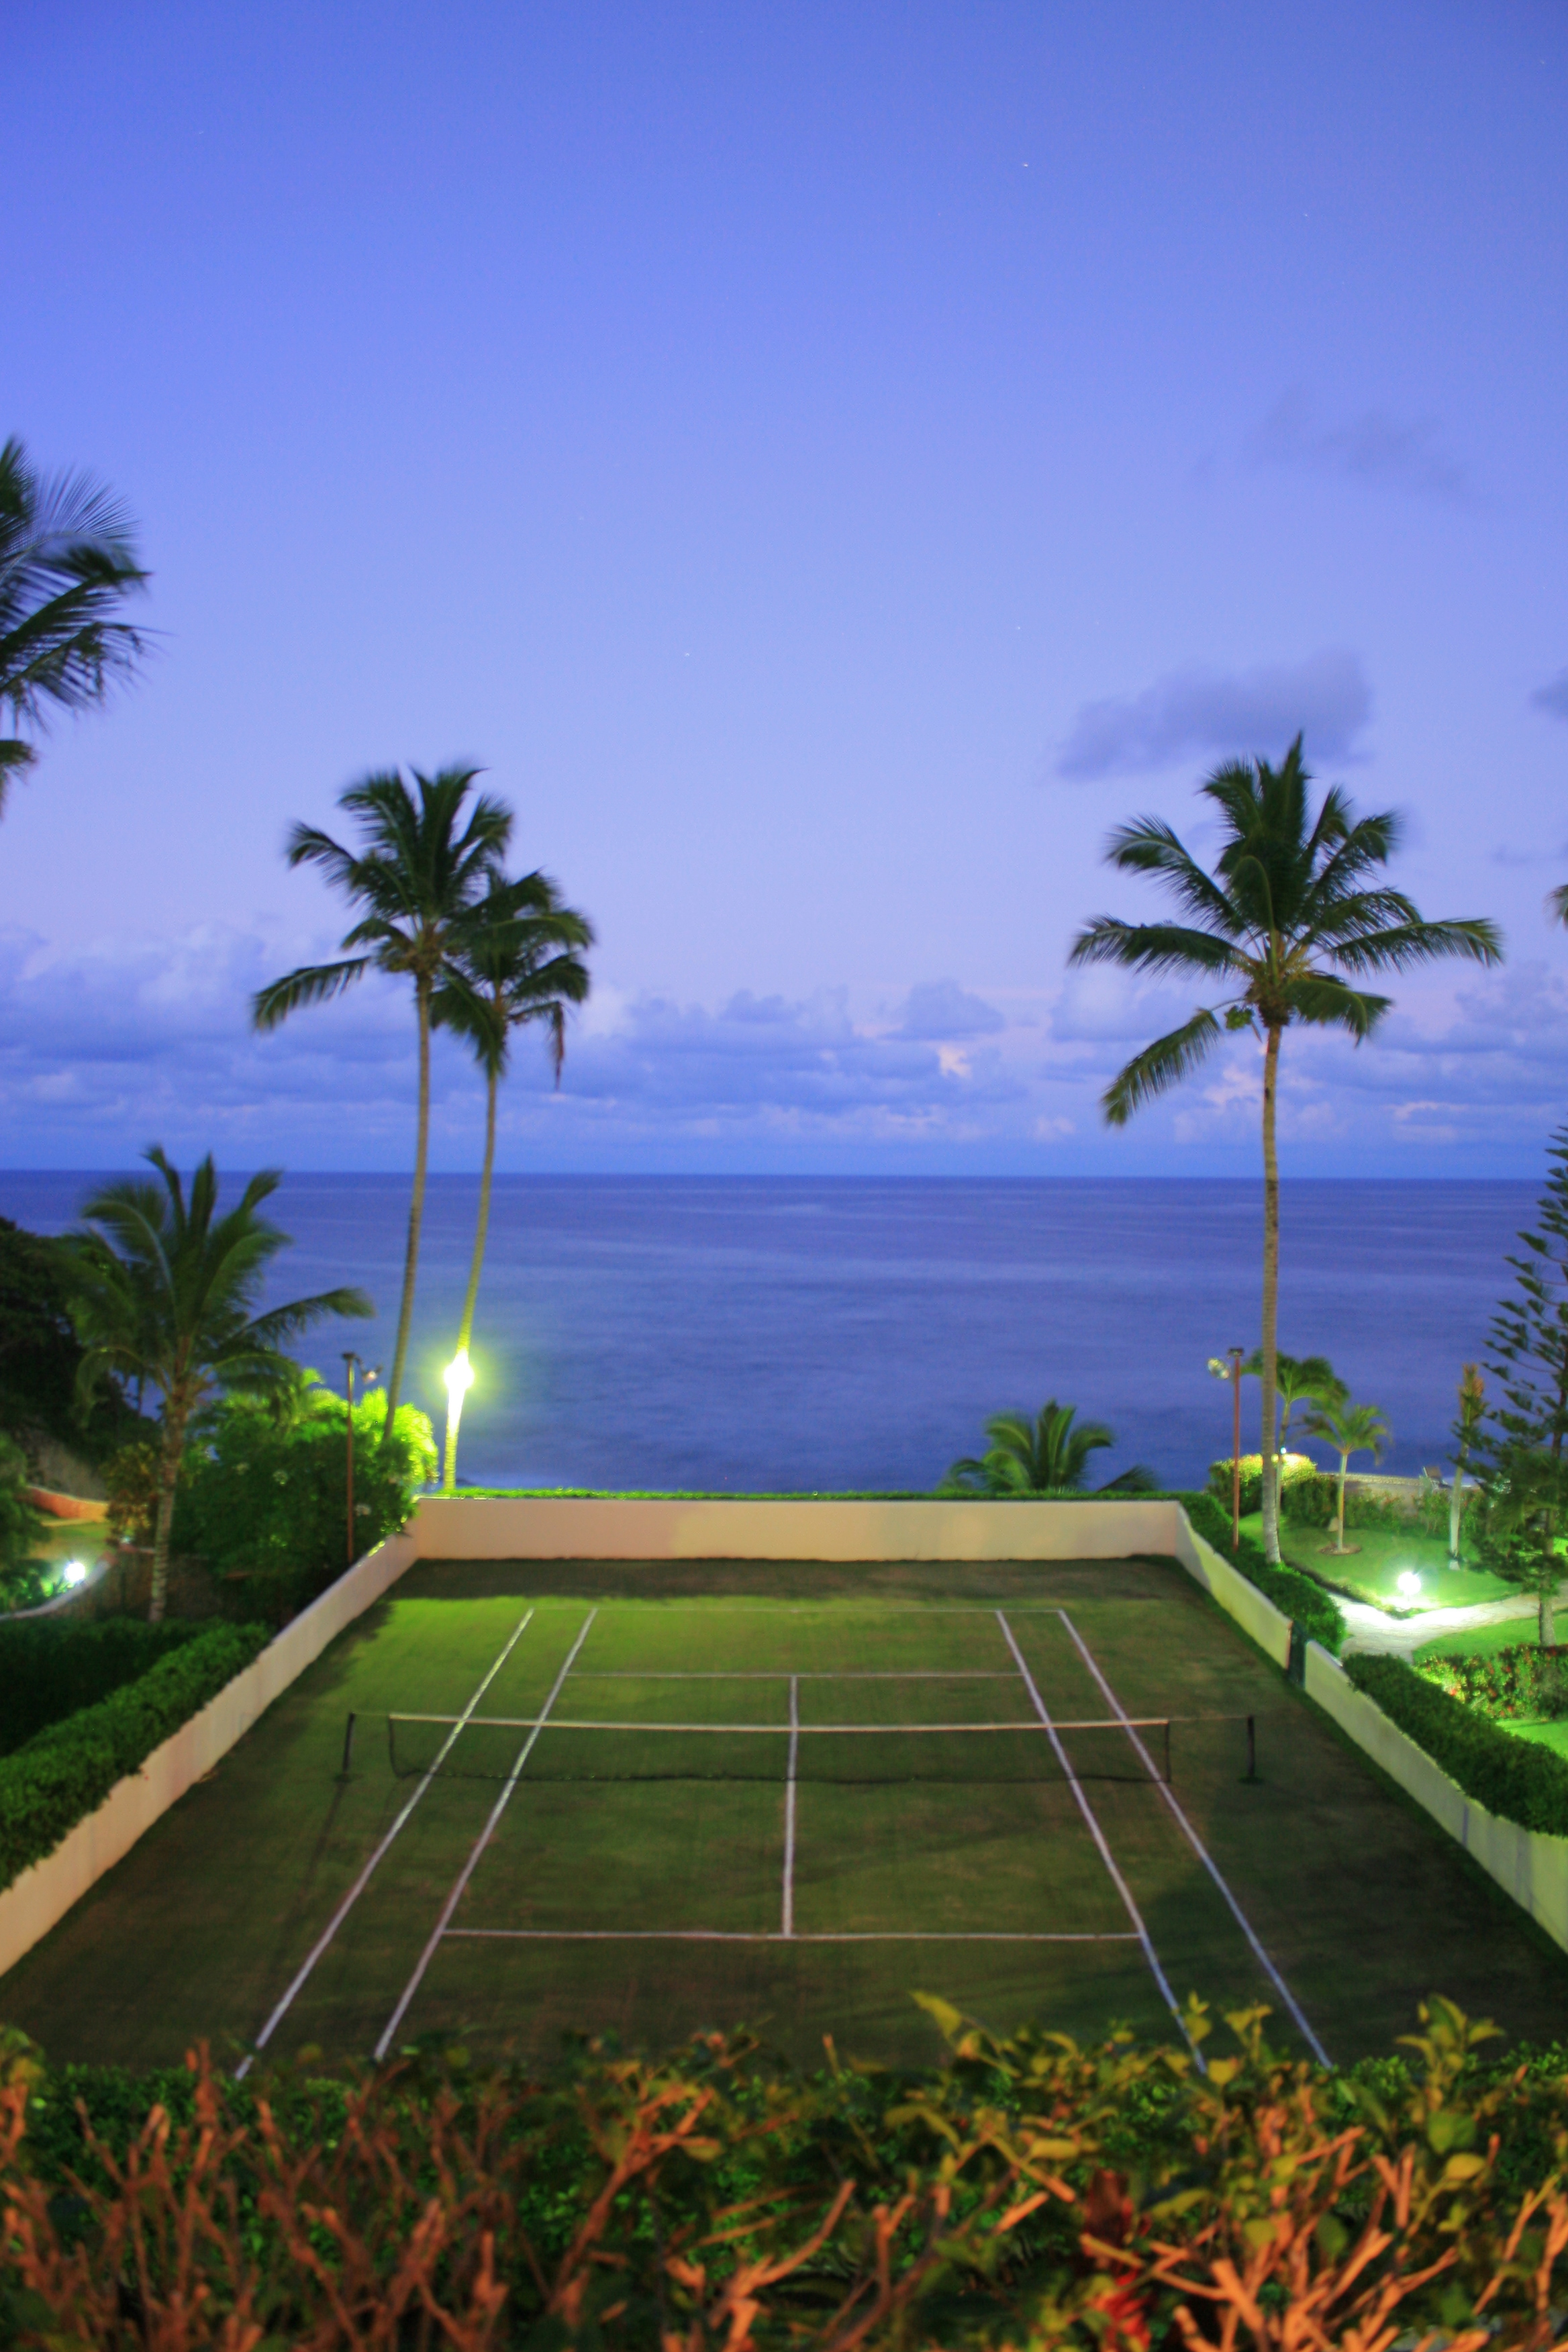 Oceanfront Grass Tennis Court